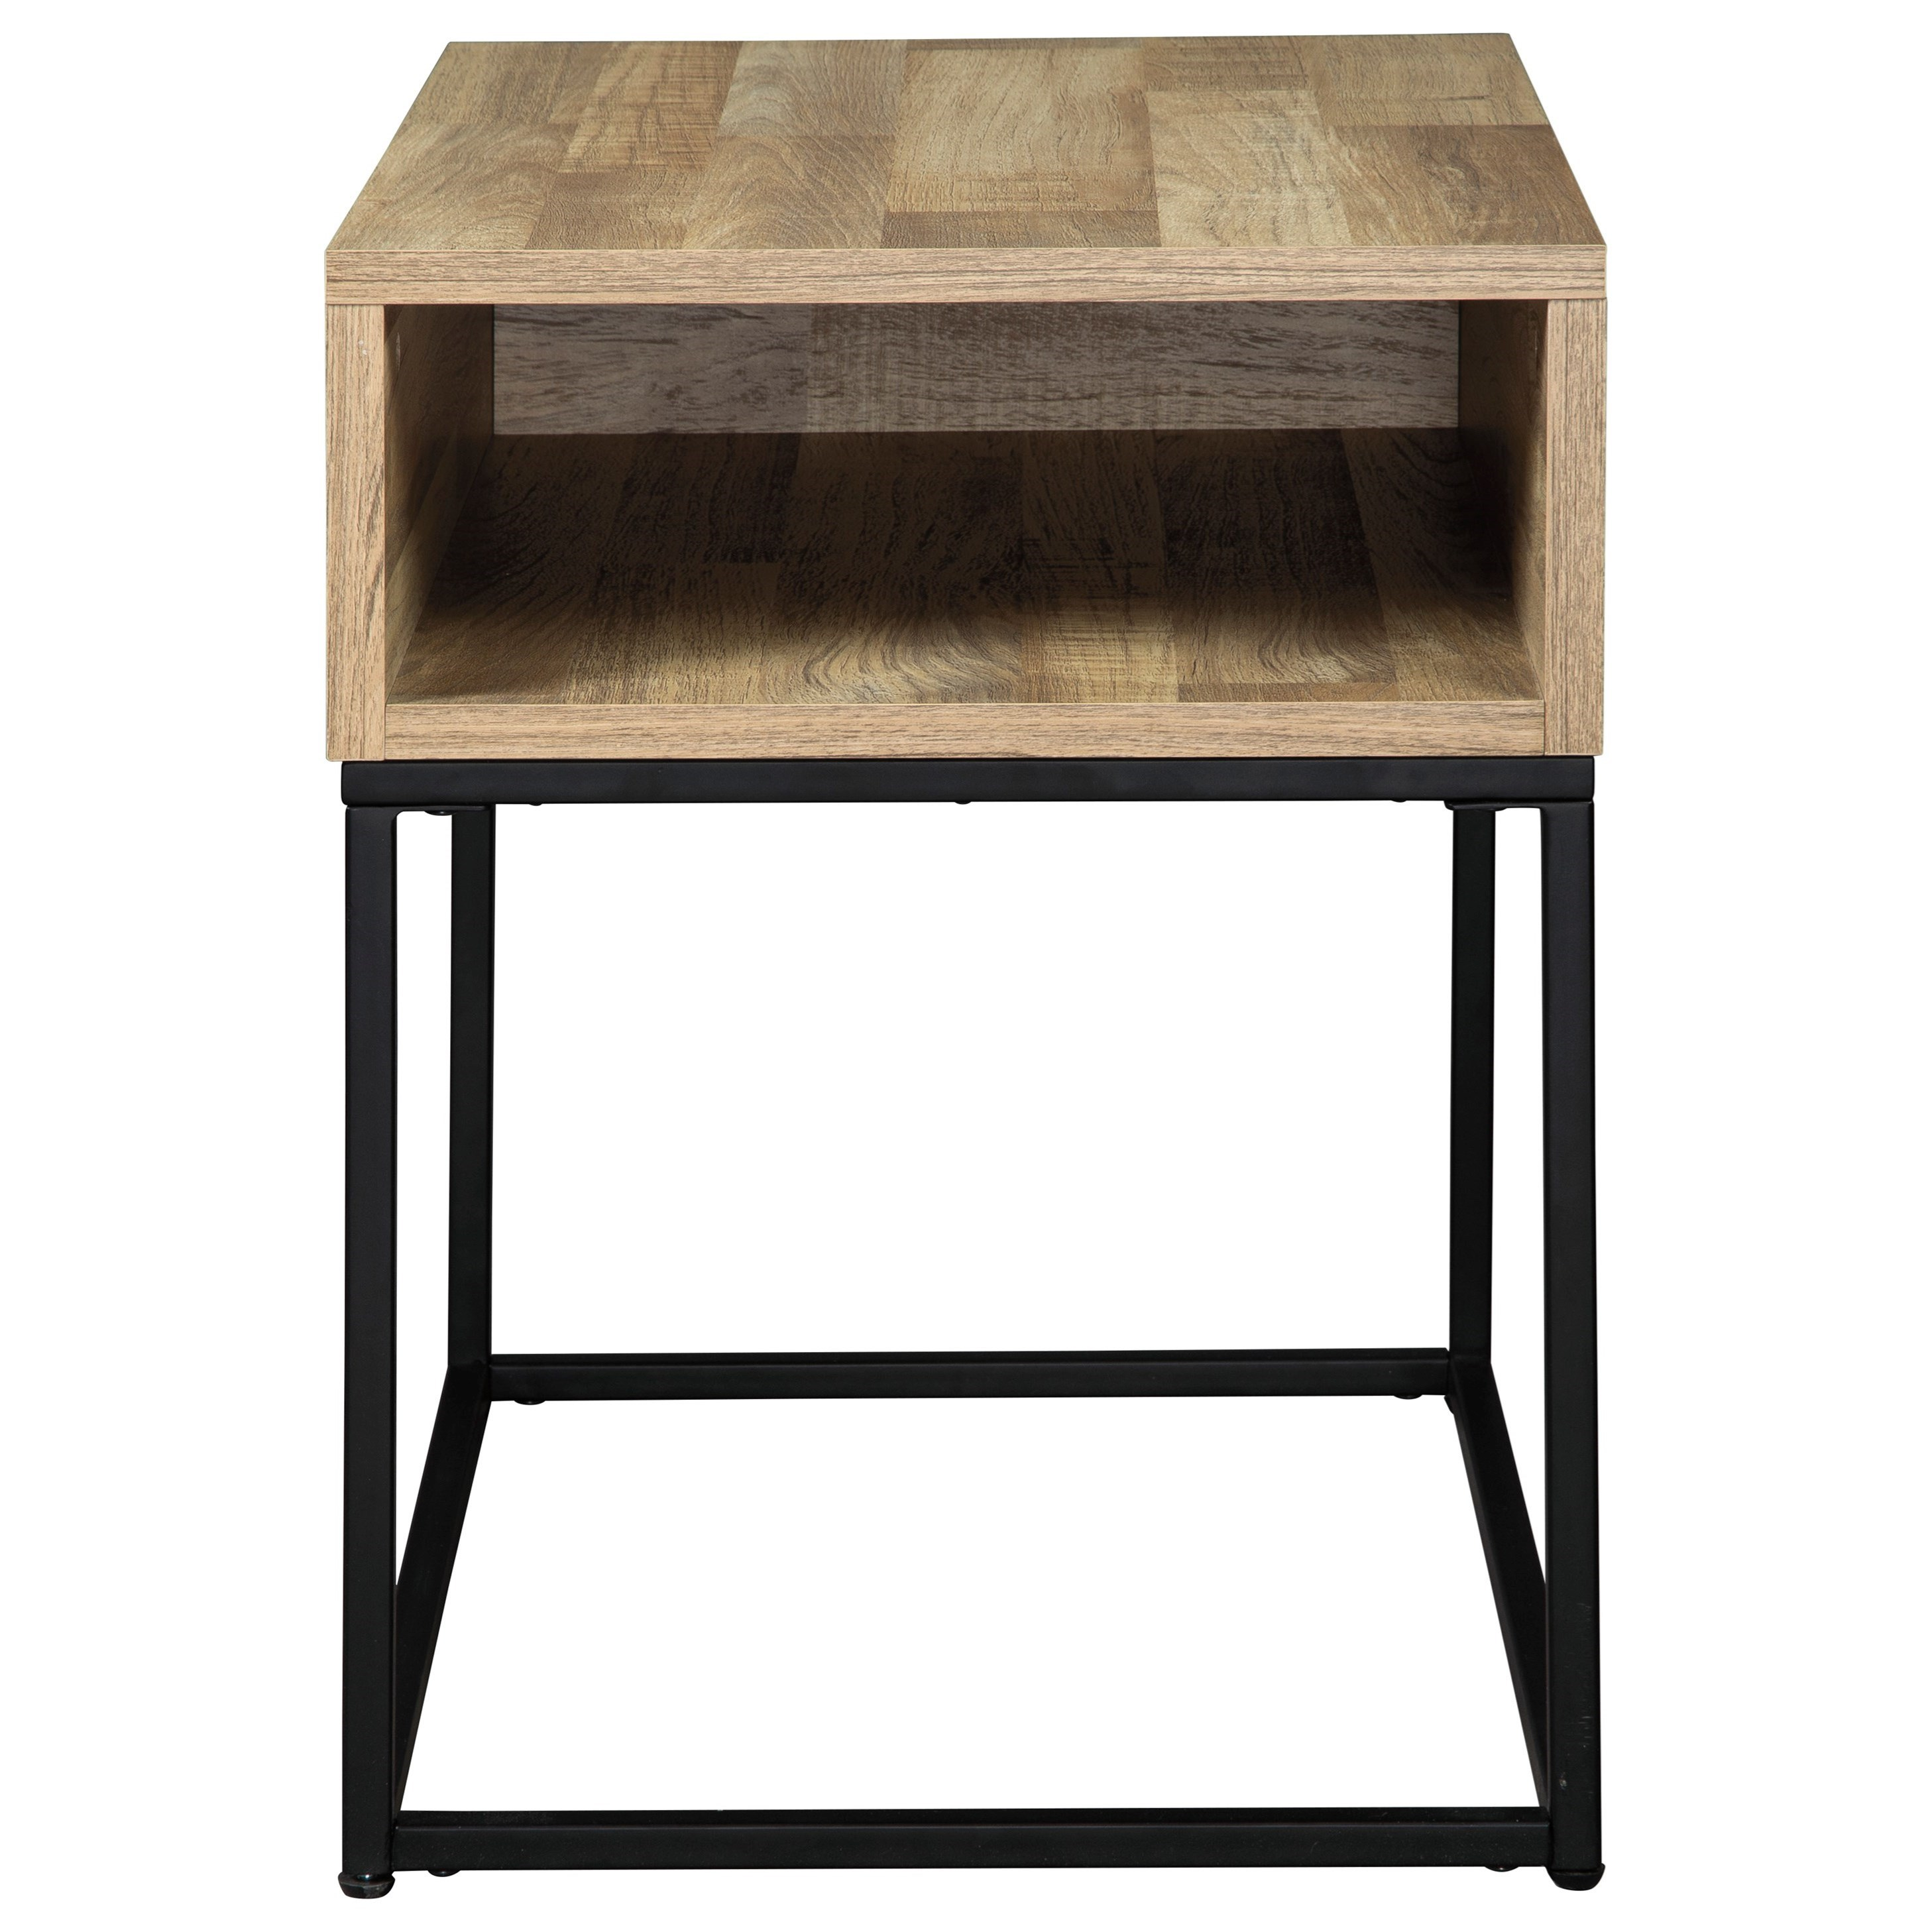 Gerdanet Rectangular End Table by Signature Design by Ashley at A1 Furniture & Mattress